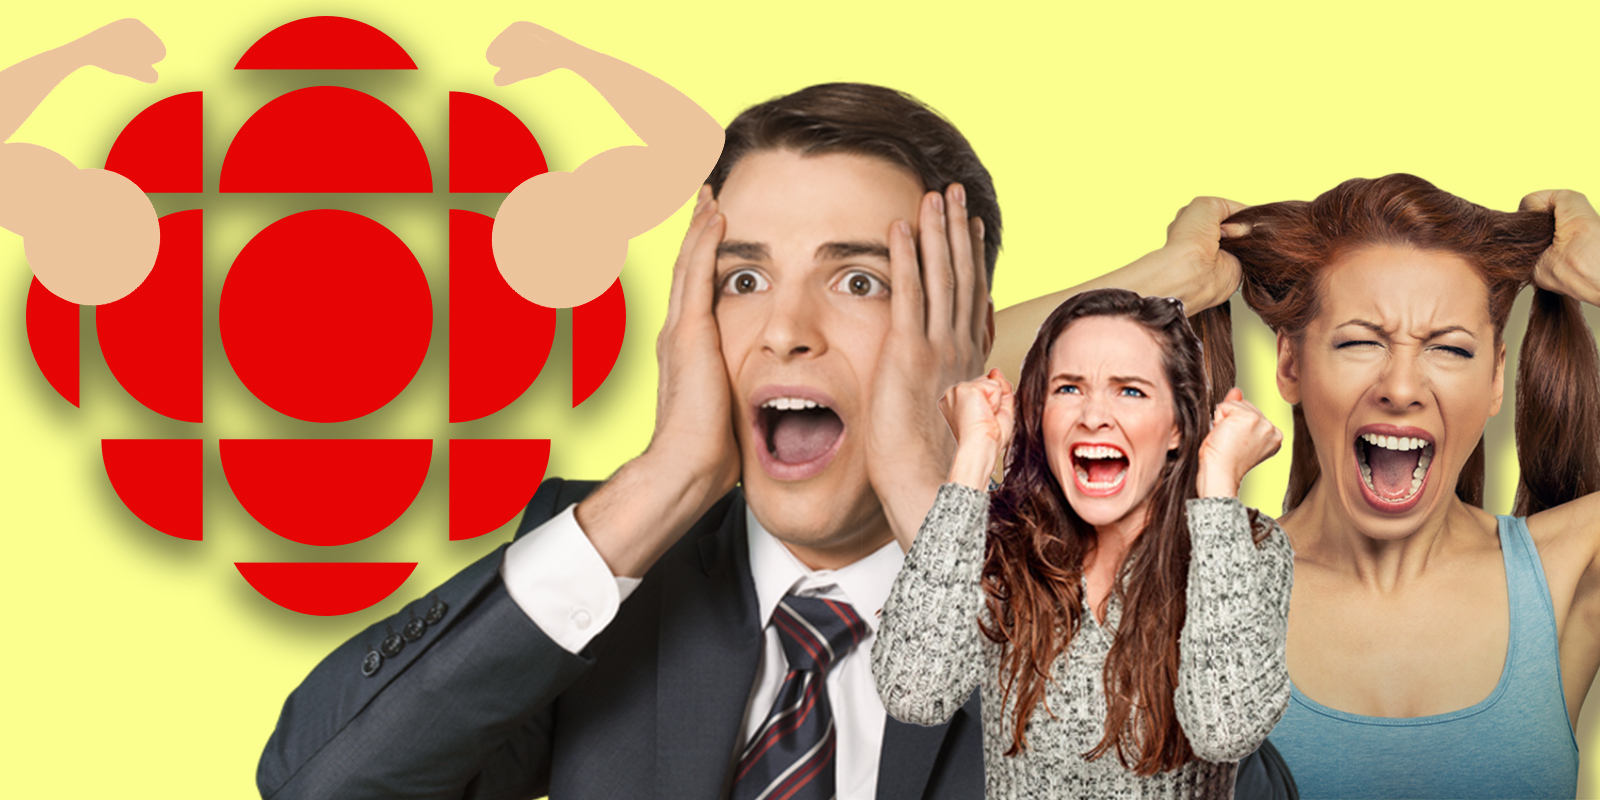 CBC should focus on Canadian content, not selling corporate products